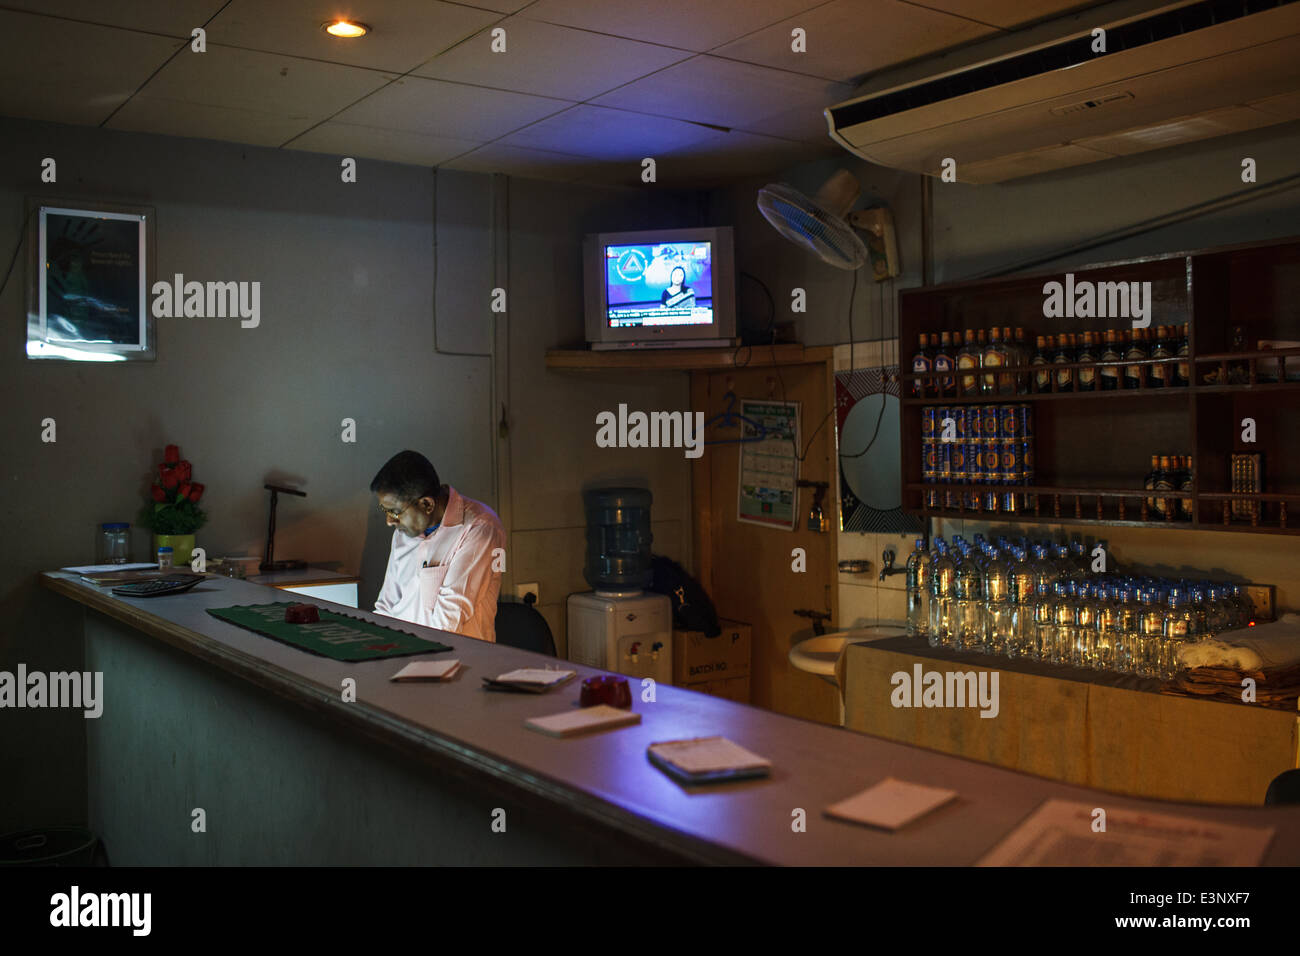 Interior of a licensed bar serving alcohol in Dhaka, Bangladesh - Stock Image